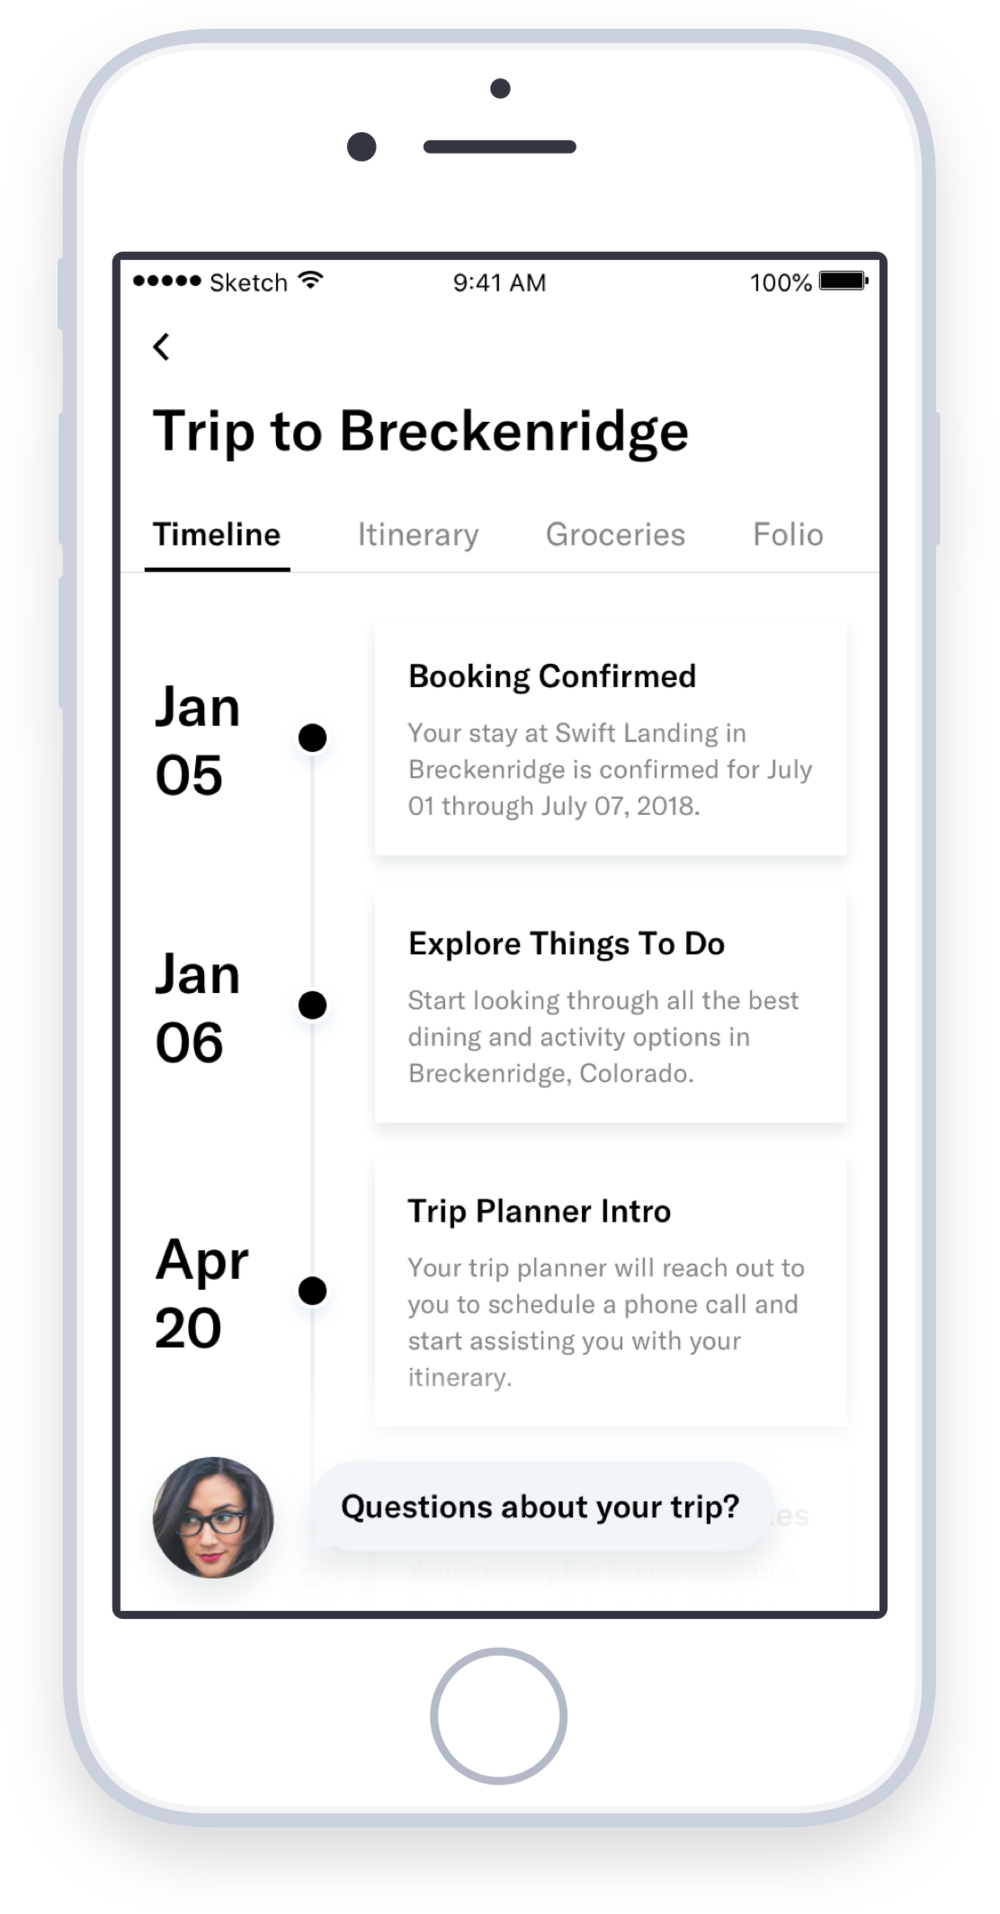 Visibility into everything that happens from booking to check in - The Trip Timeline helps members keep track of all the different pieces involved in planning their trip. From directing them to browse things to do, to grocery order reminders, and finally introductions to their local concierge a few days before check in, the trip timeline keeps members engaged with Inspirato and dreaming of their trip for months leading up to their vacation.